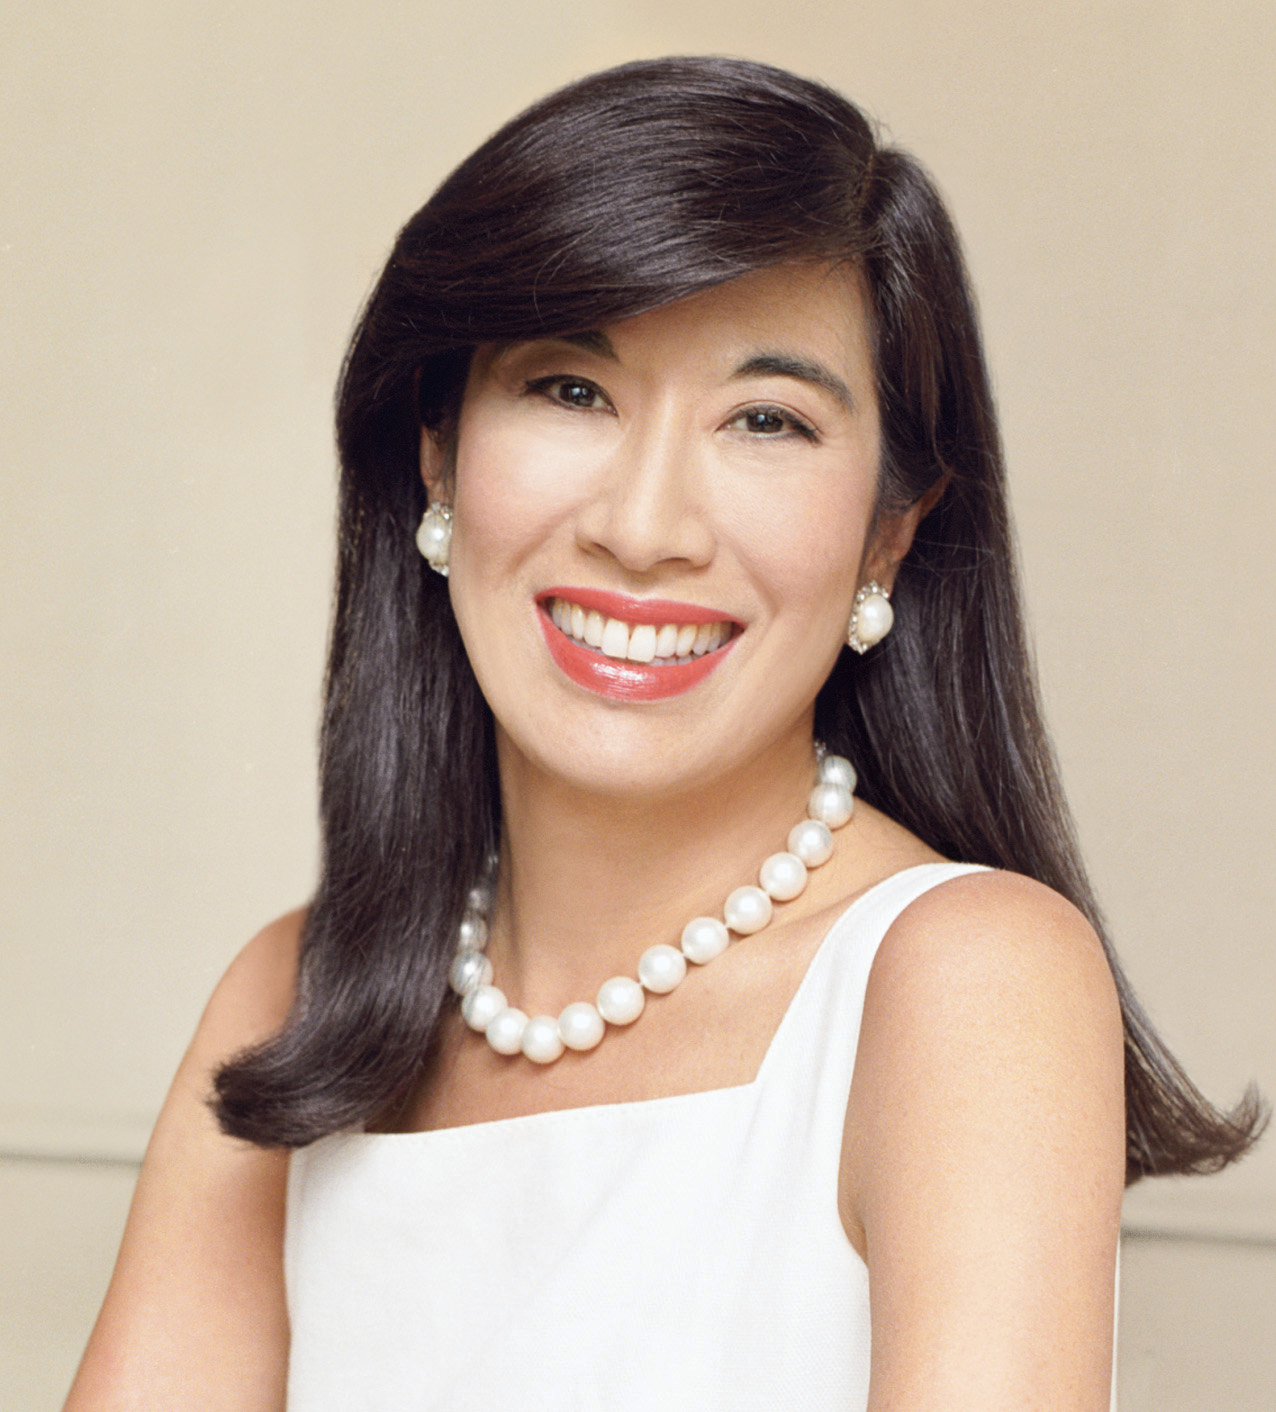 Jung Online Former Avon Ceo Andrea Jung Joins Wayfair Board Directors Boards